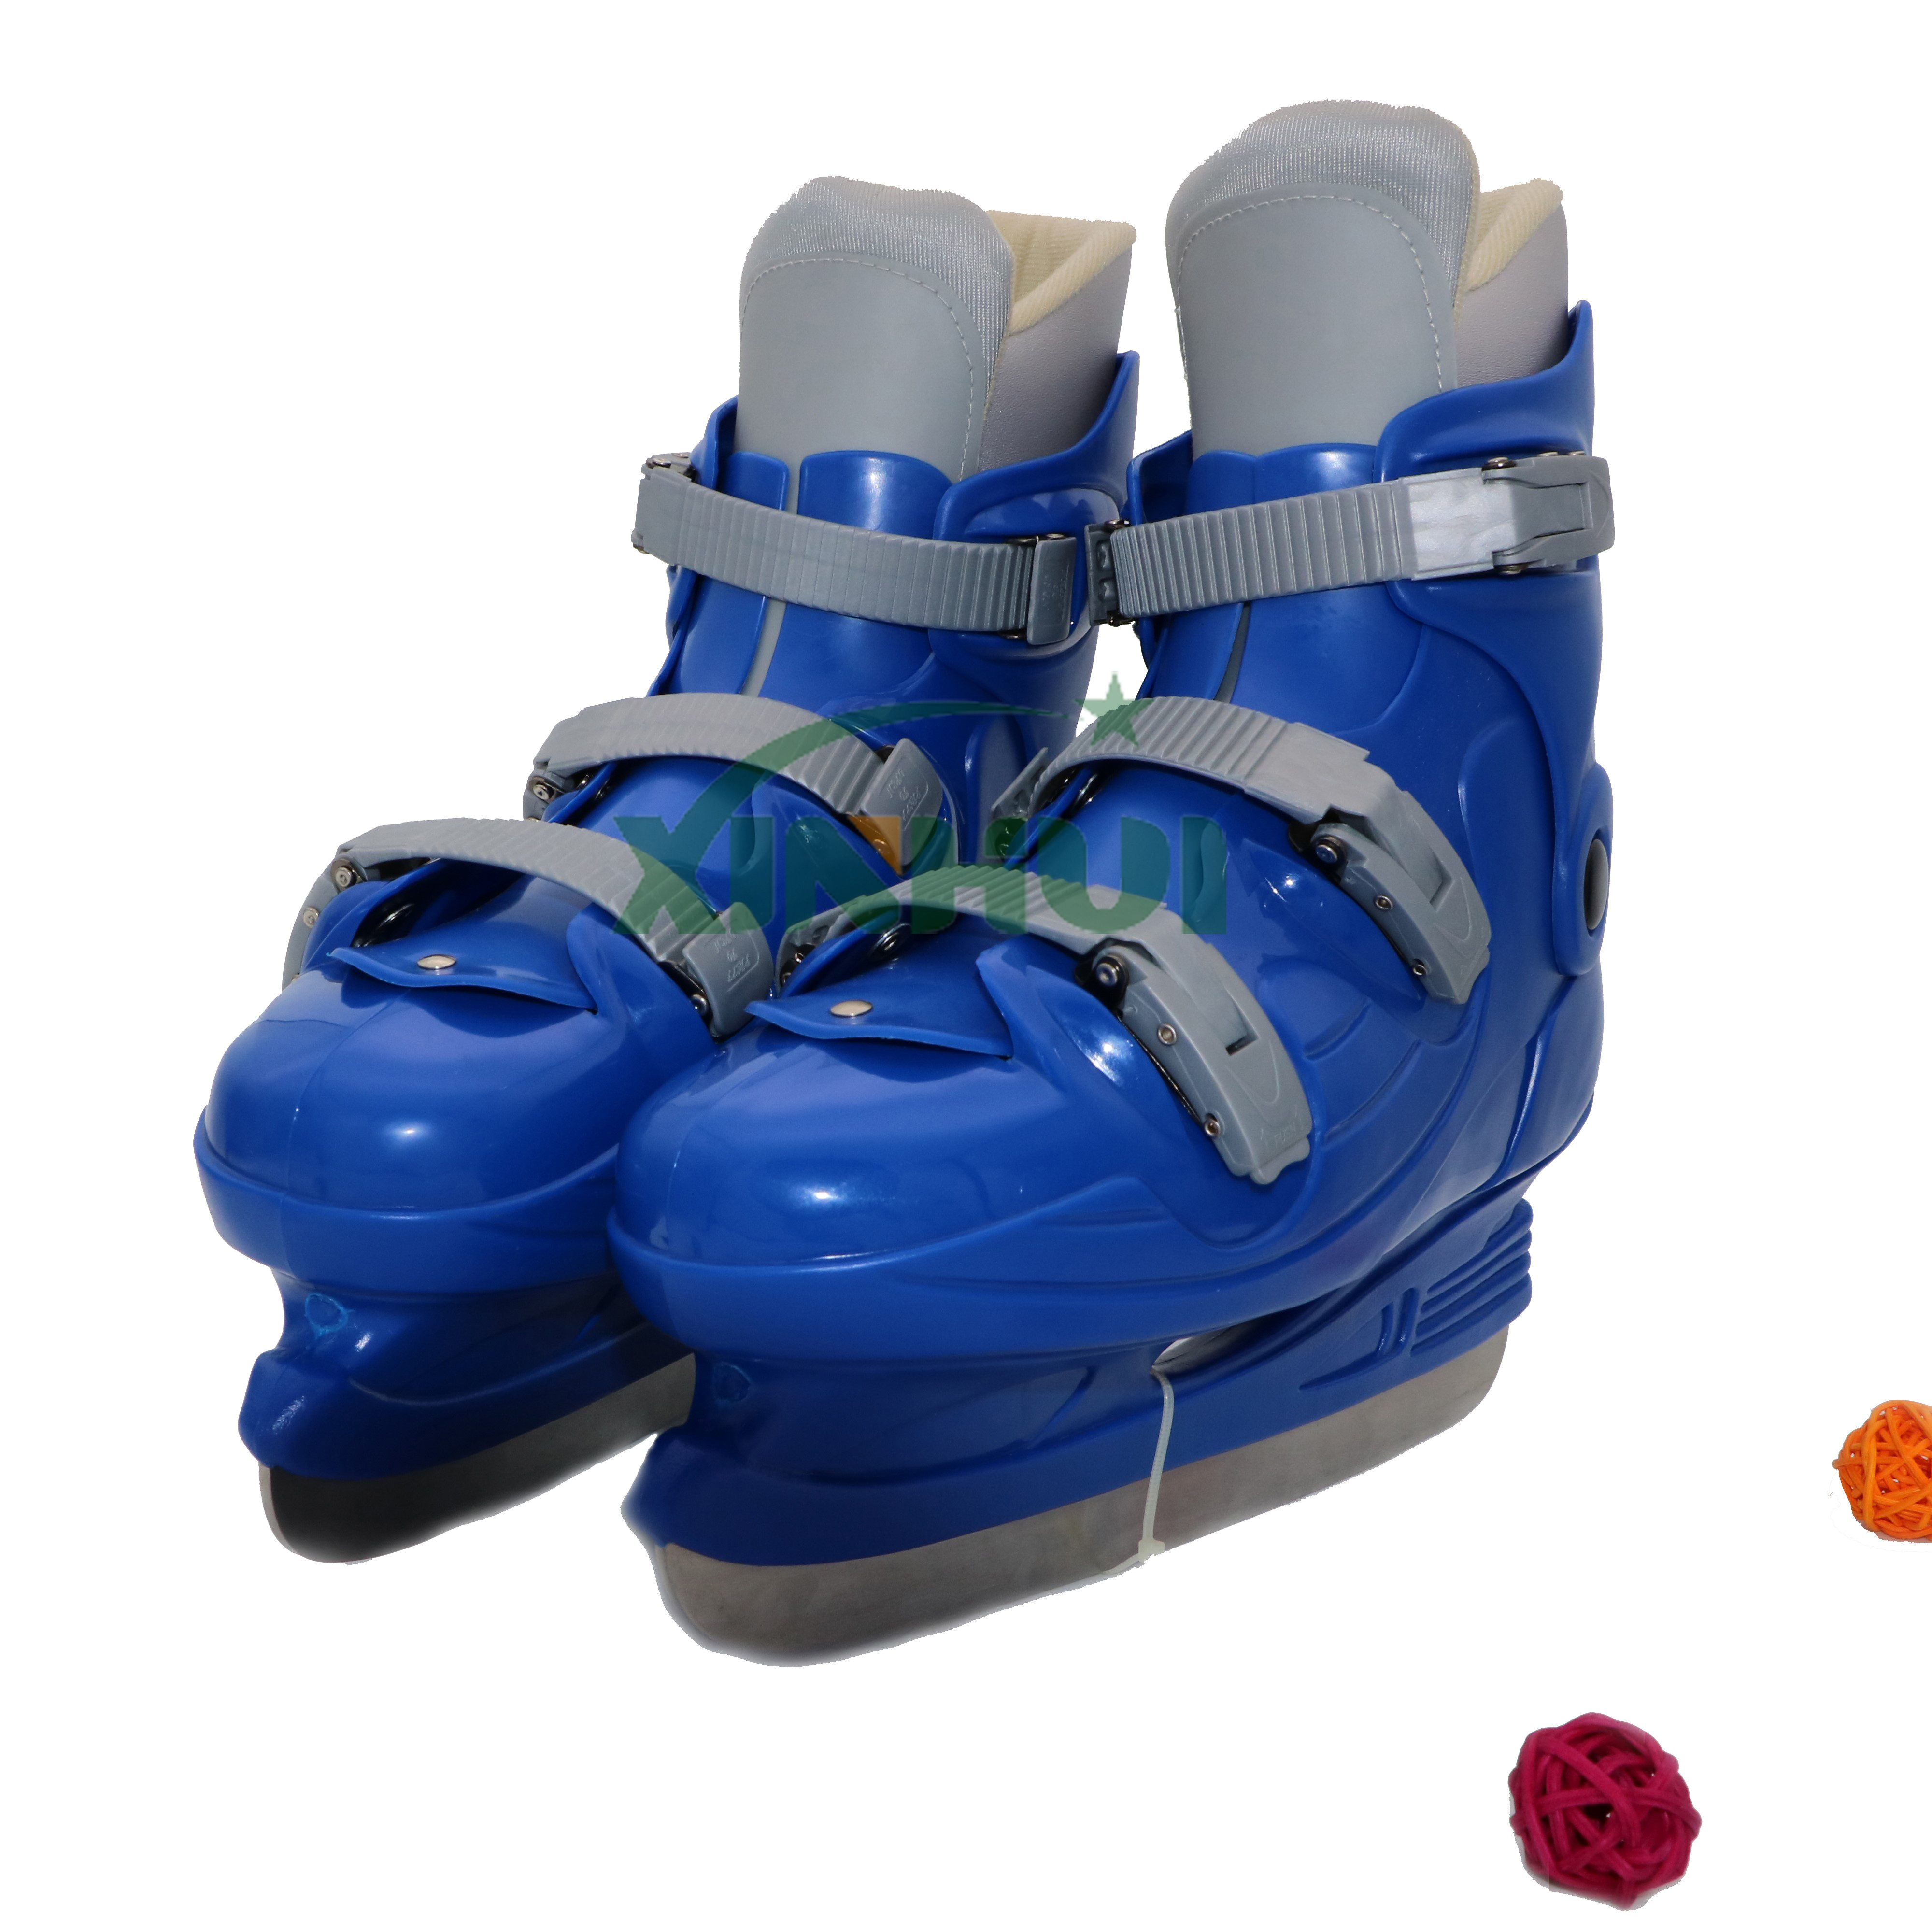 Premium Adjustable Ice Skates for Girls and Boys, Awesome BlueColor, Super Comfortable Padding and Reinforced Ankle Support